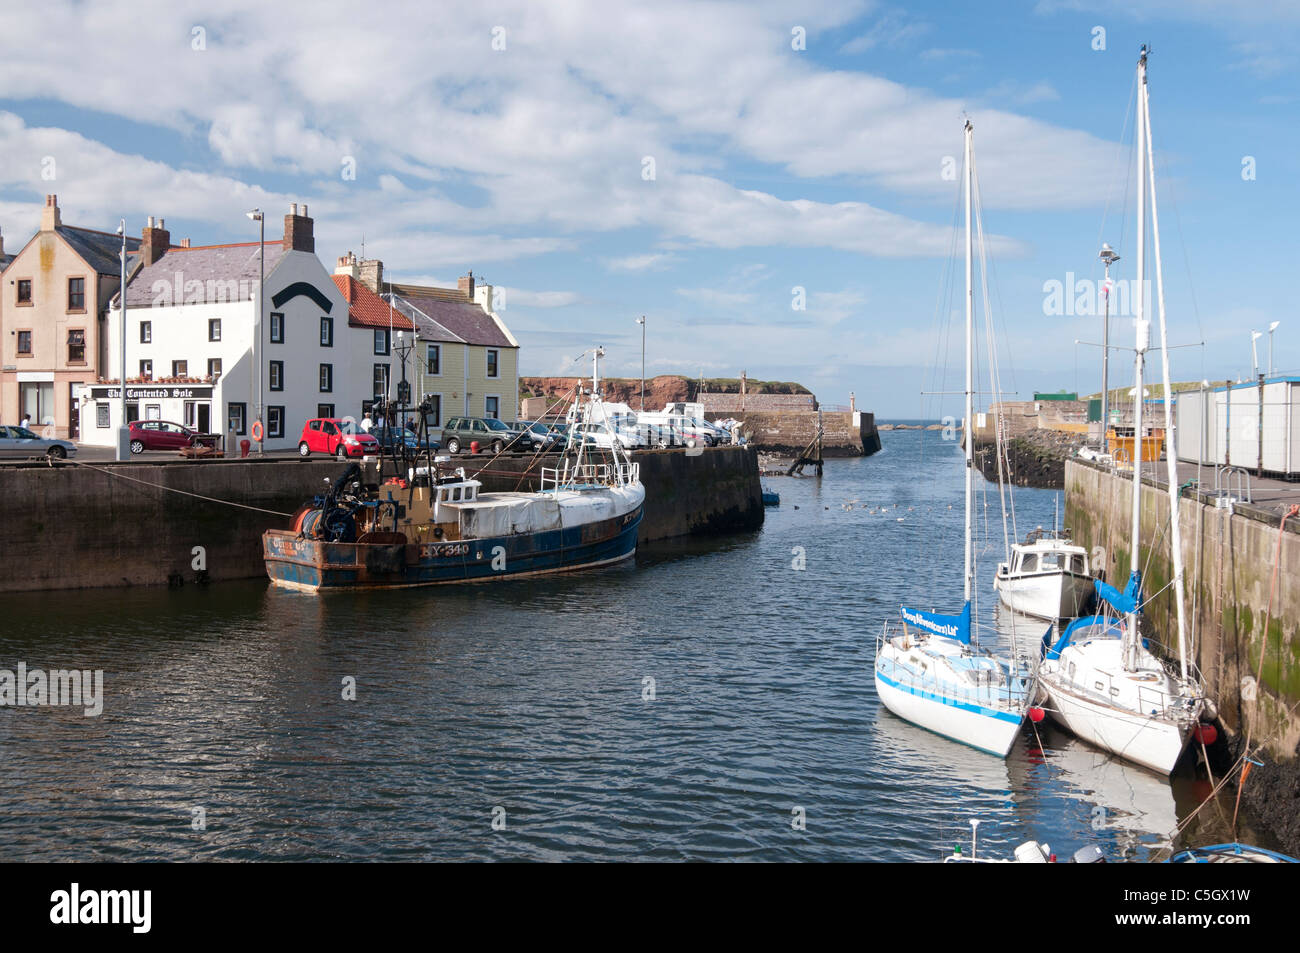 Eyemouth Harbour and sailing boats - Stock Image